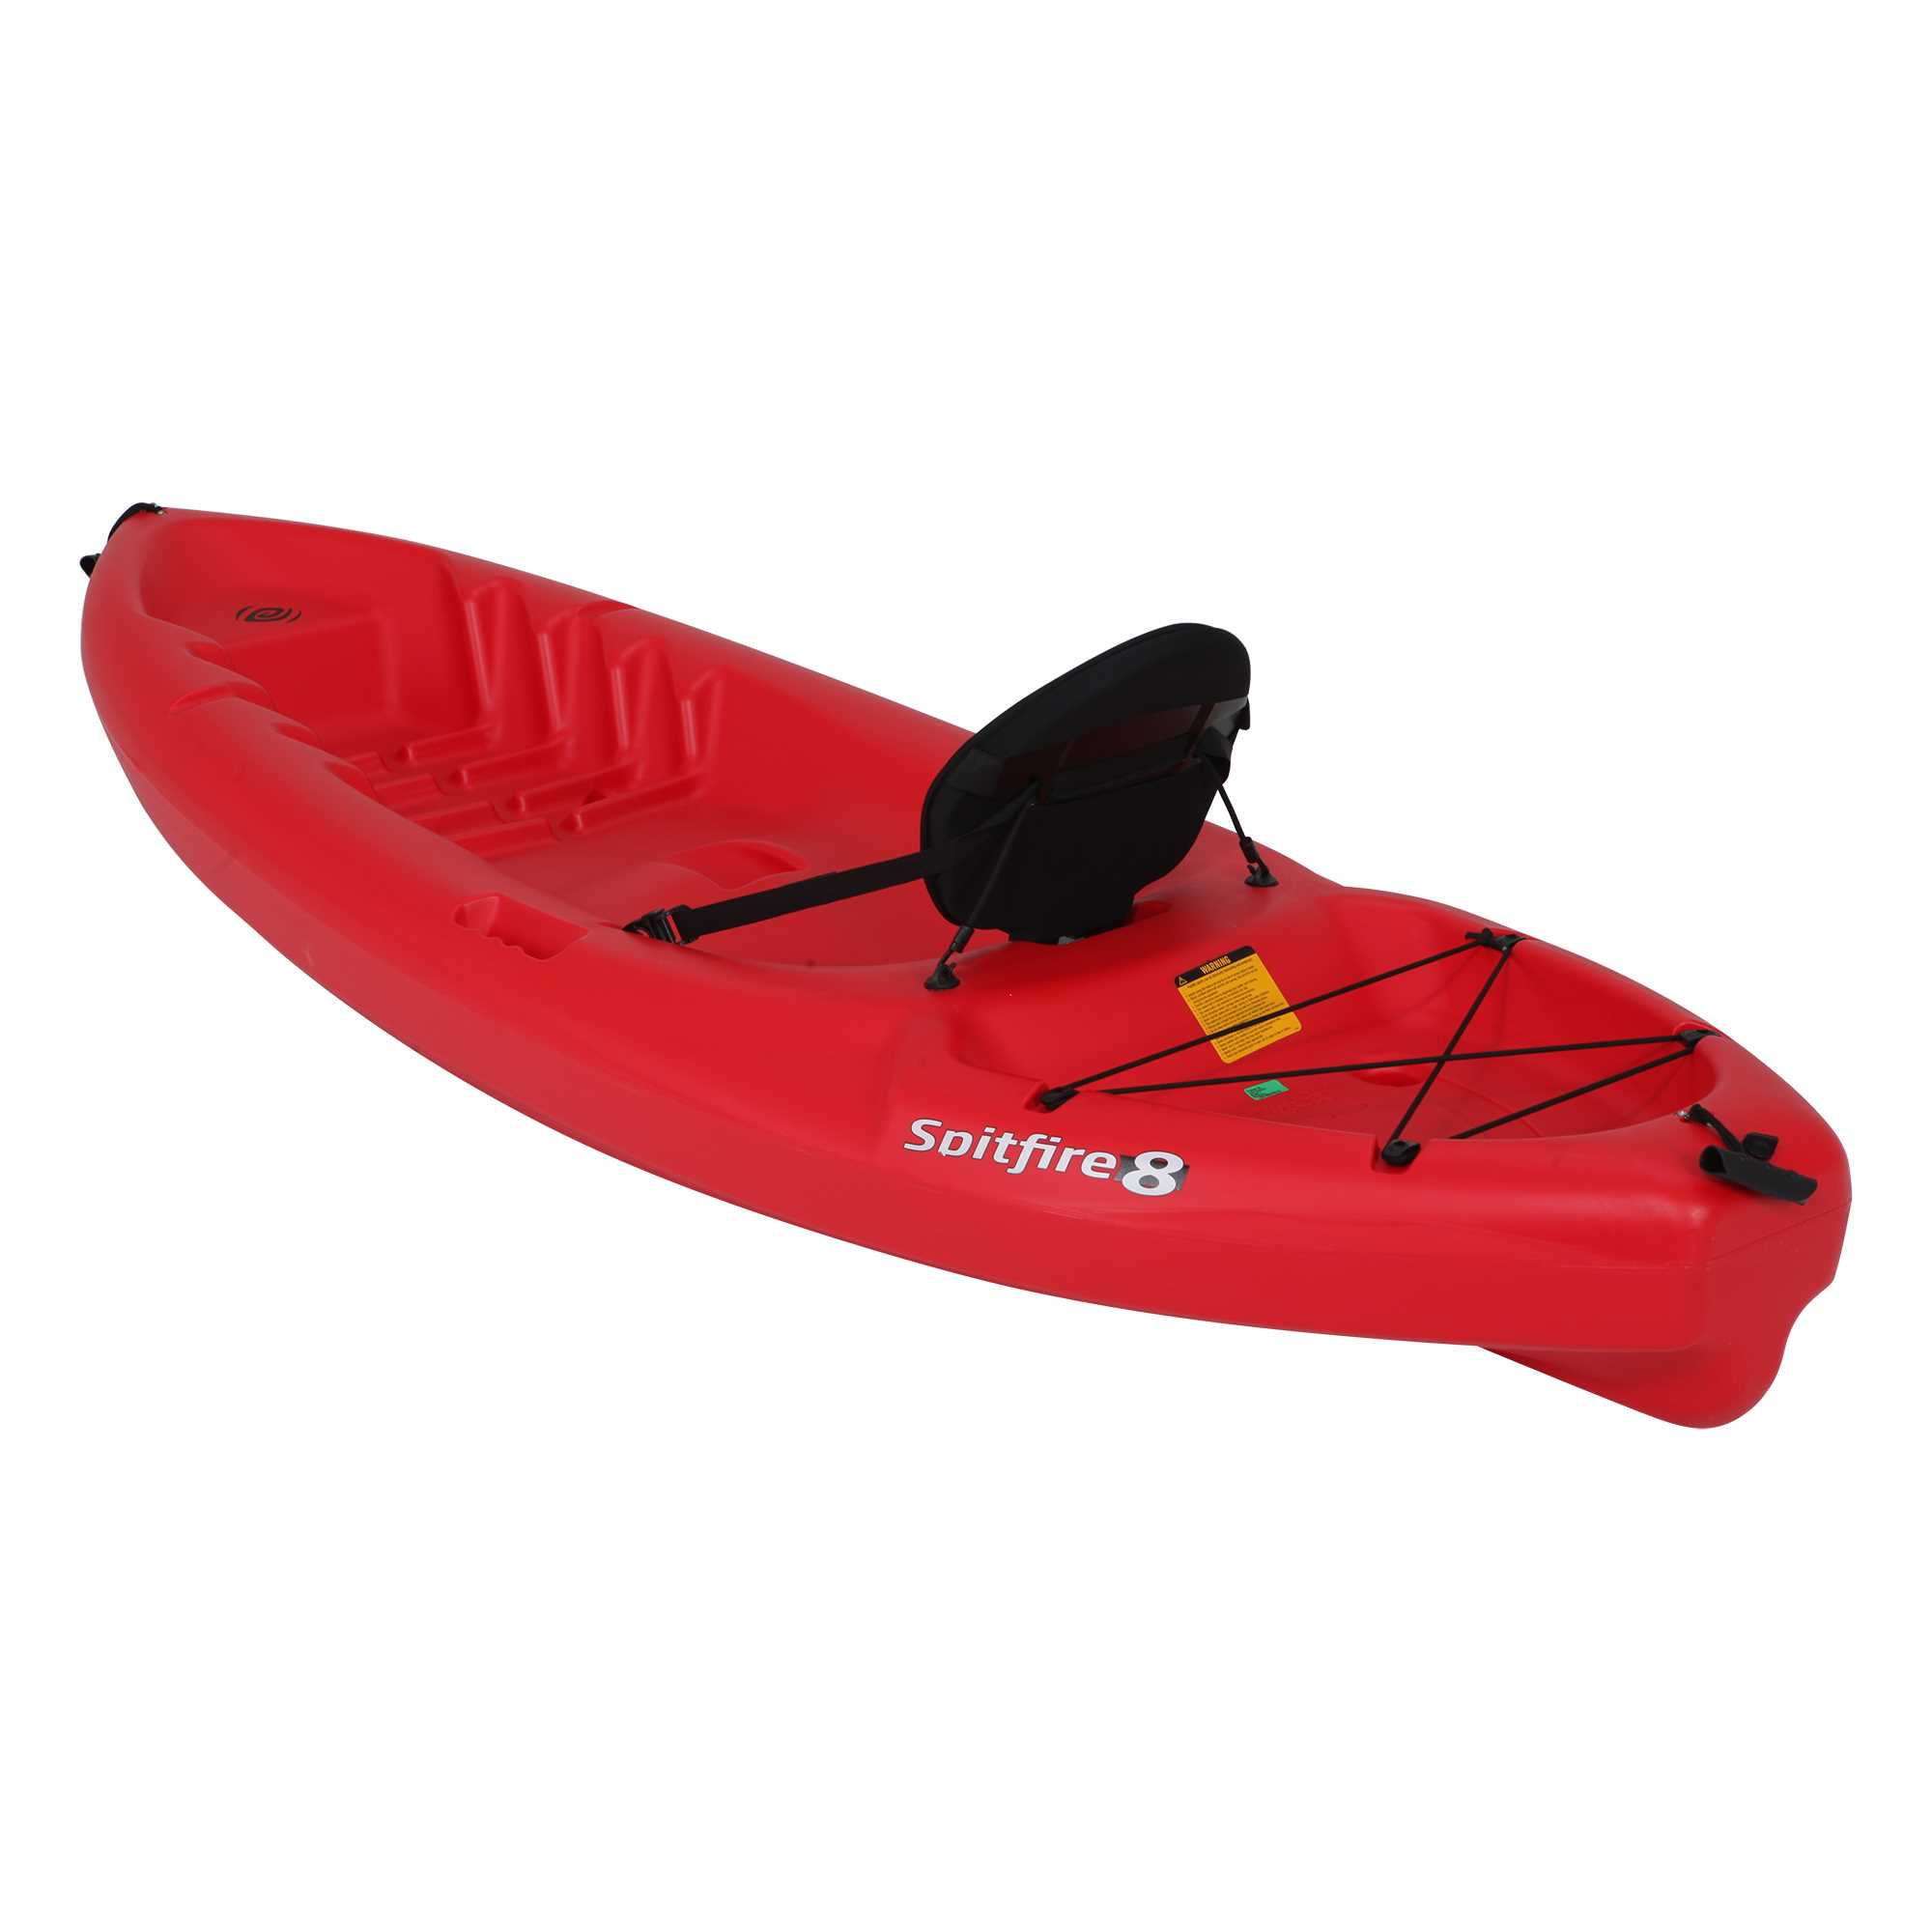 Single person Spitfire 8 Kayak